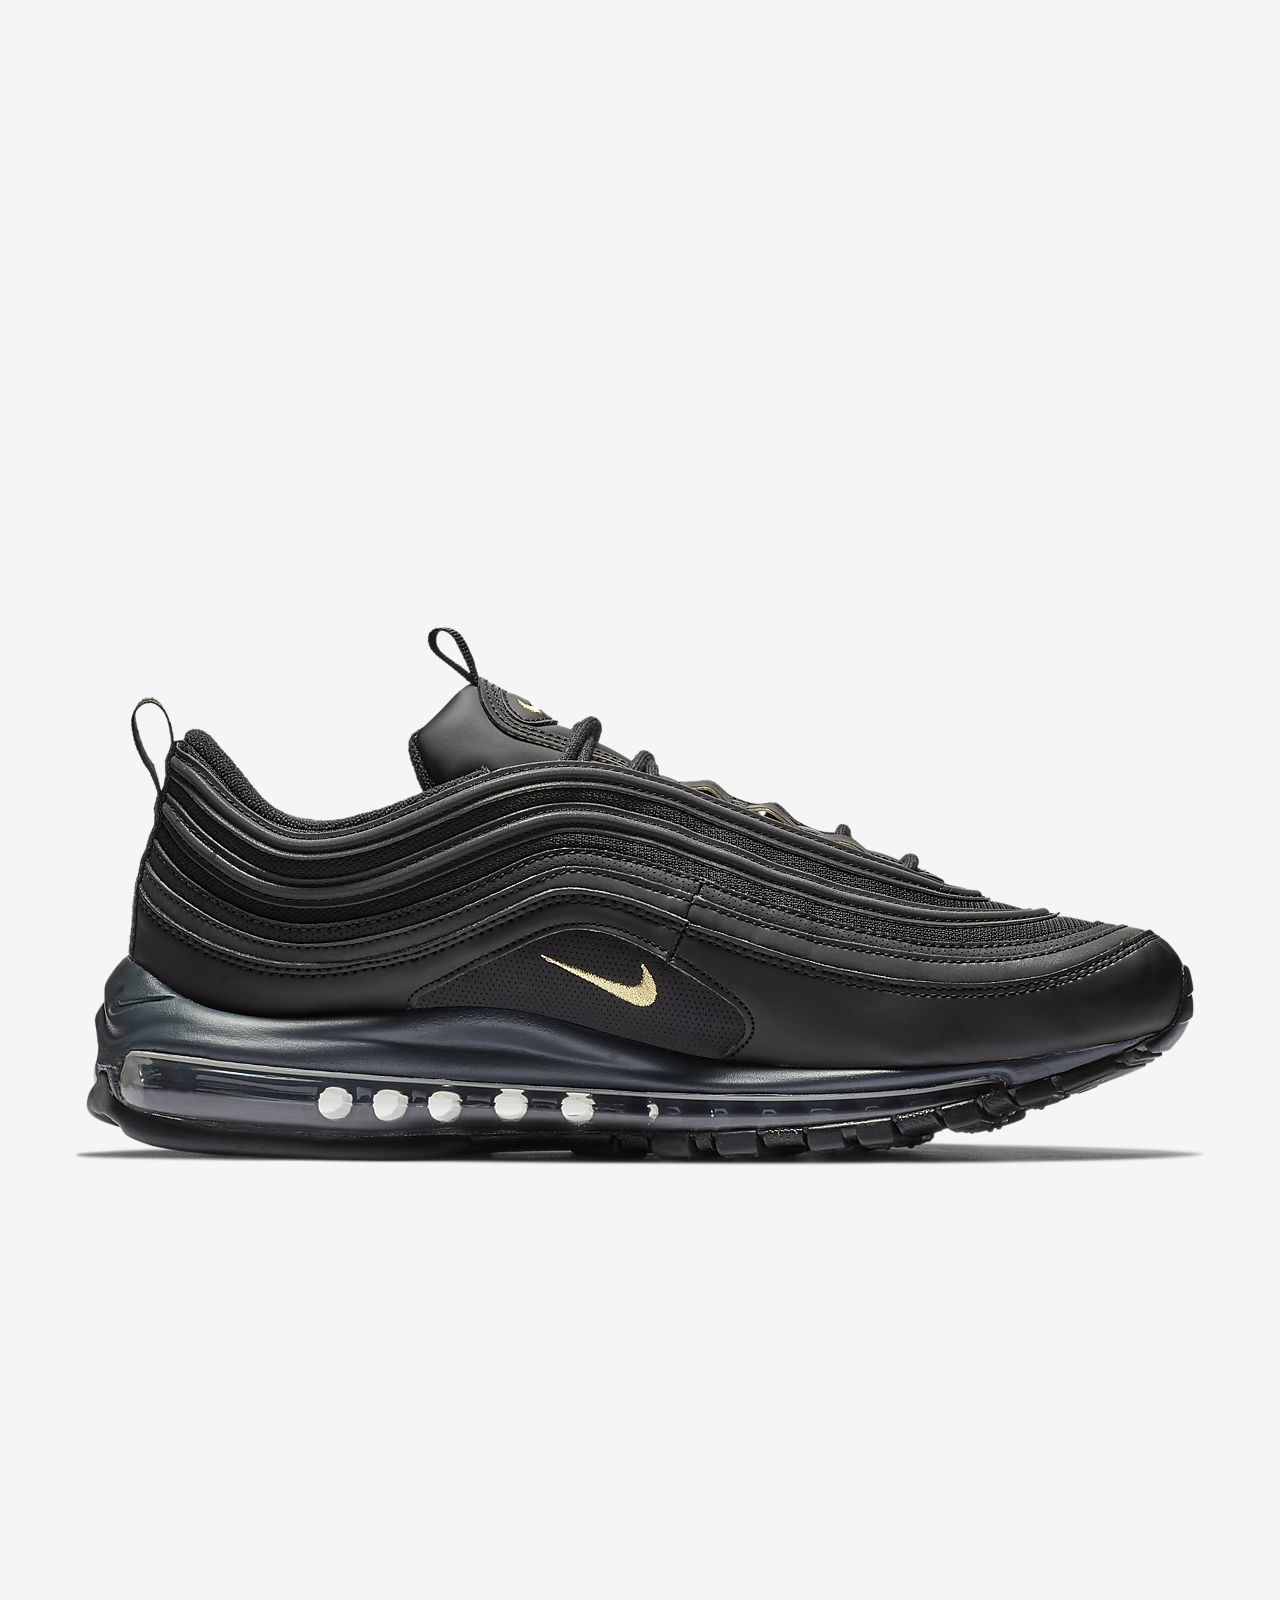 save off online store usa cheap sale denmark air max 97 oro junior 0a056 96c24